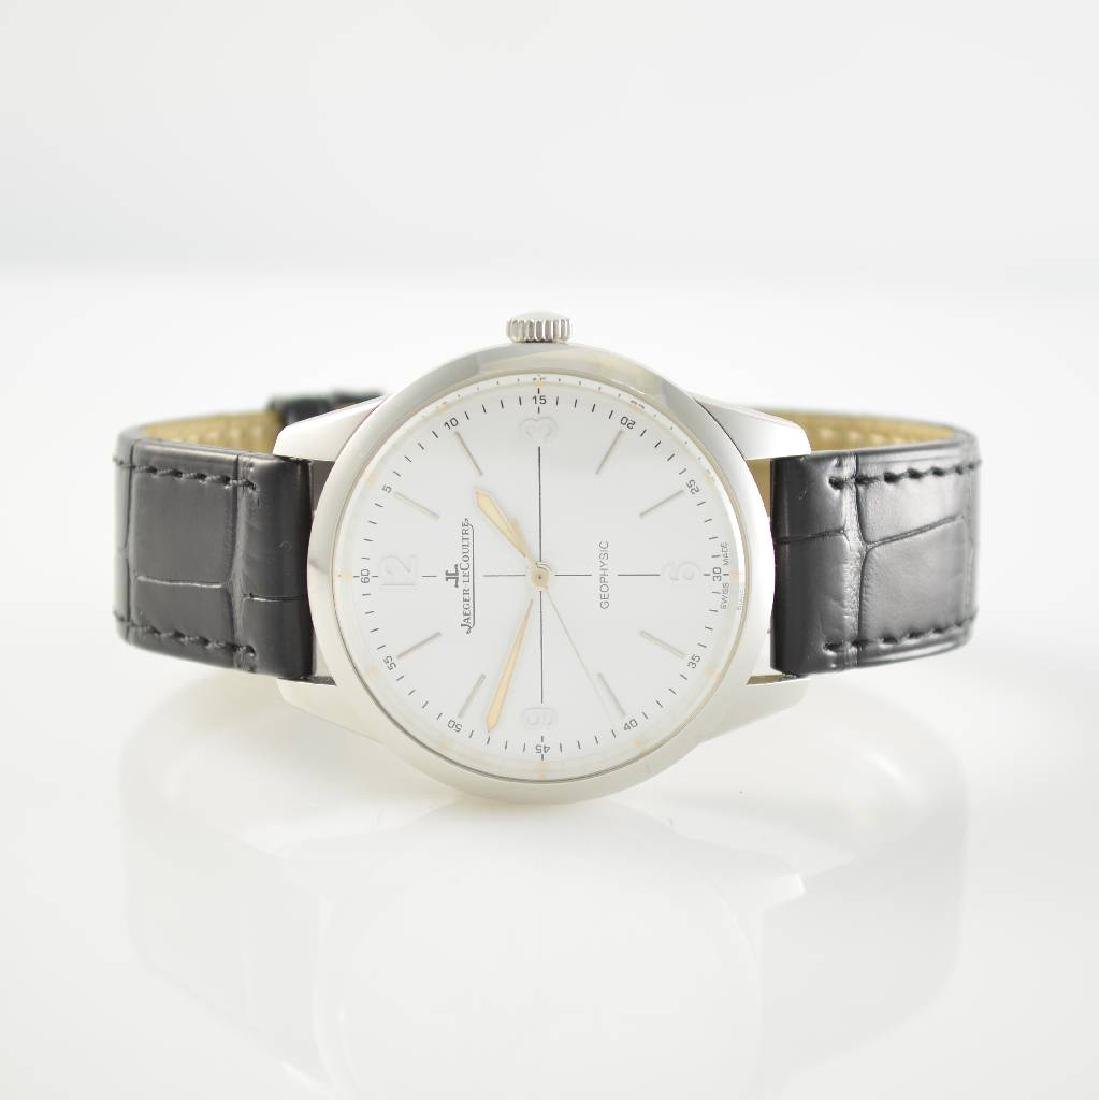 Jaeger-LeCoultre Geophysic 1958 limited gents